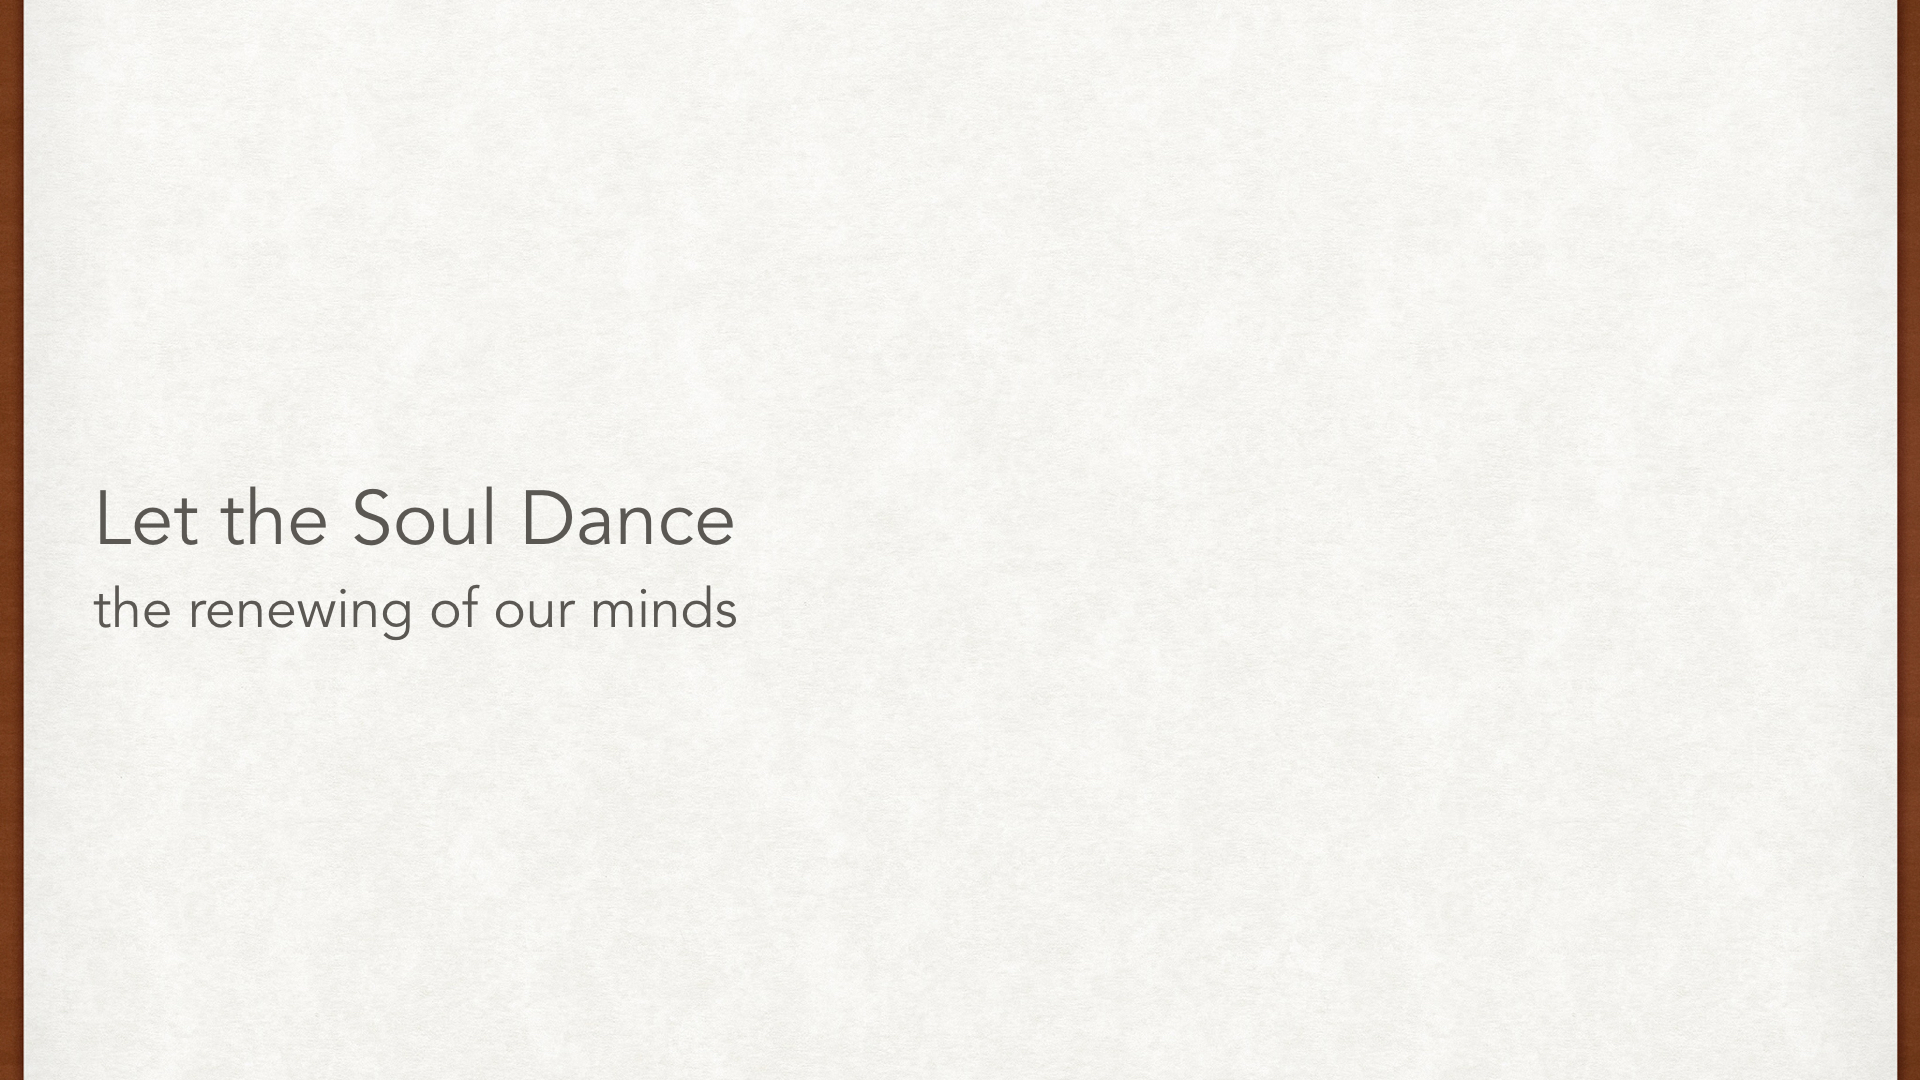 let-the-soul-dance-oct-23-2016-001